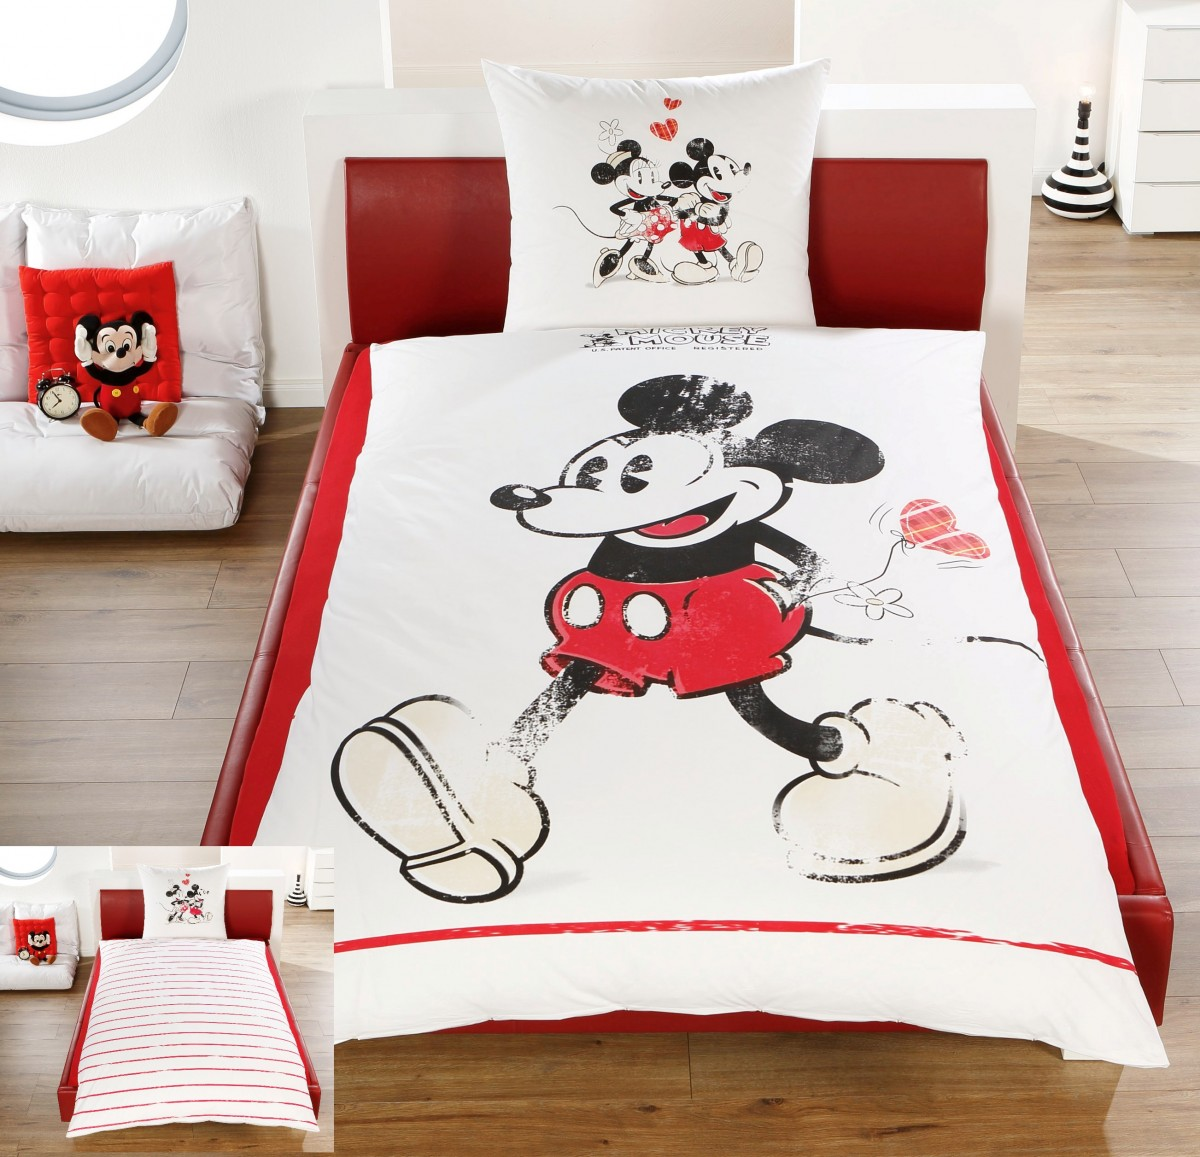 disney linon renforc wende bettw sche mickey minnie mouse 135x200cm 2 tlg bettw sche. Black Bedroom Furniture Sets. Home Design Ideas